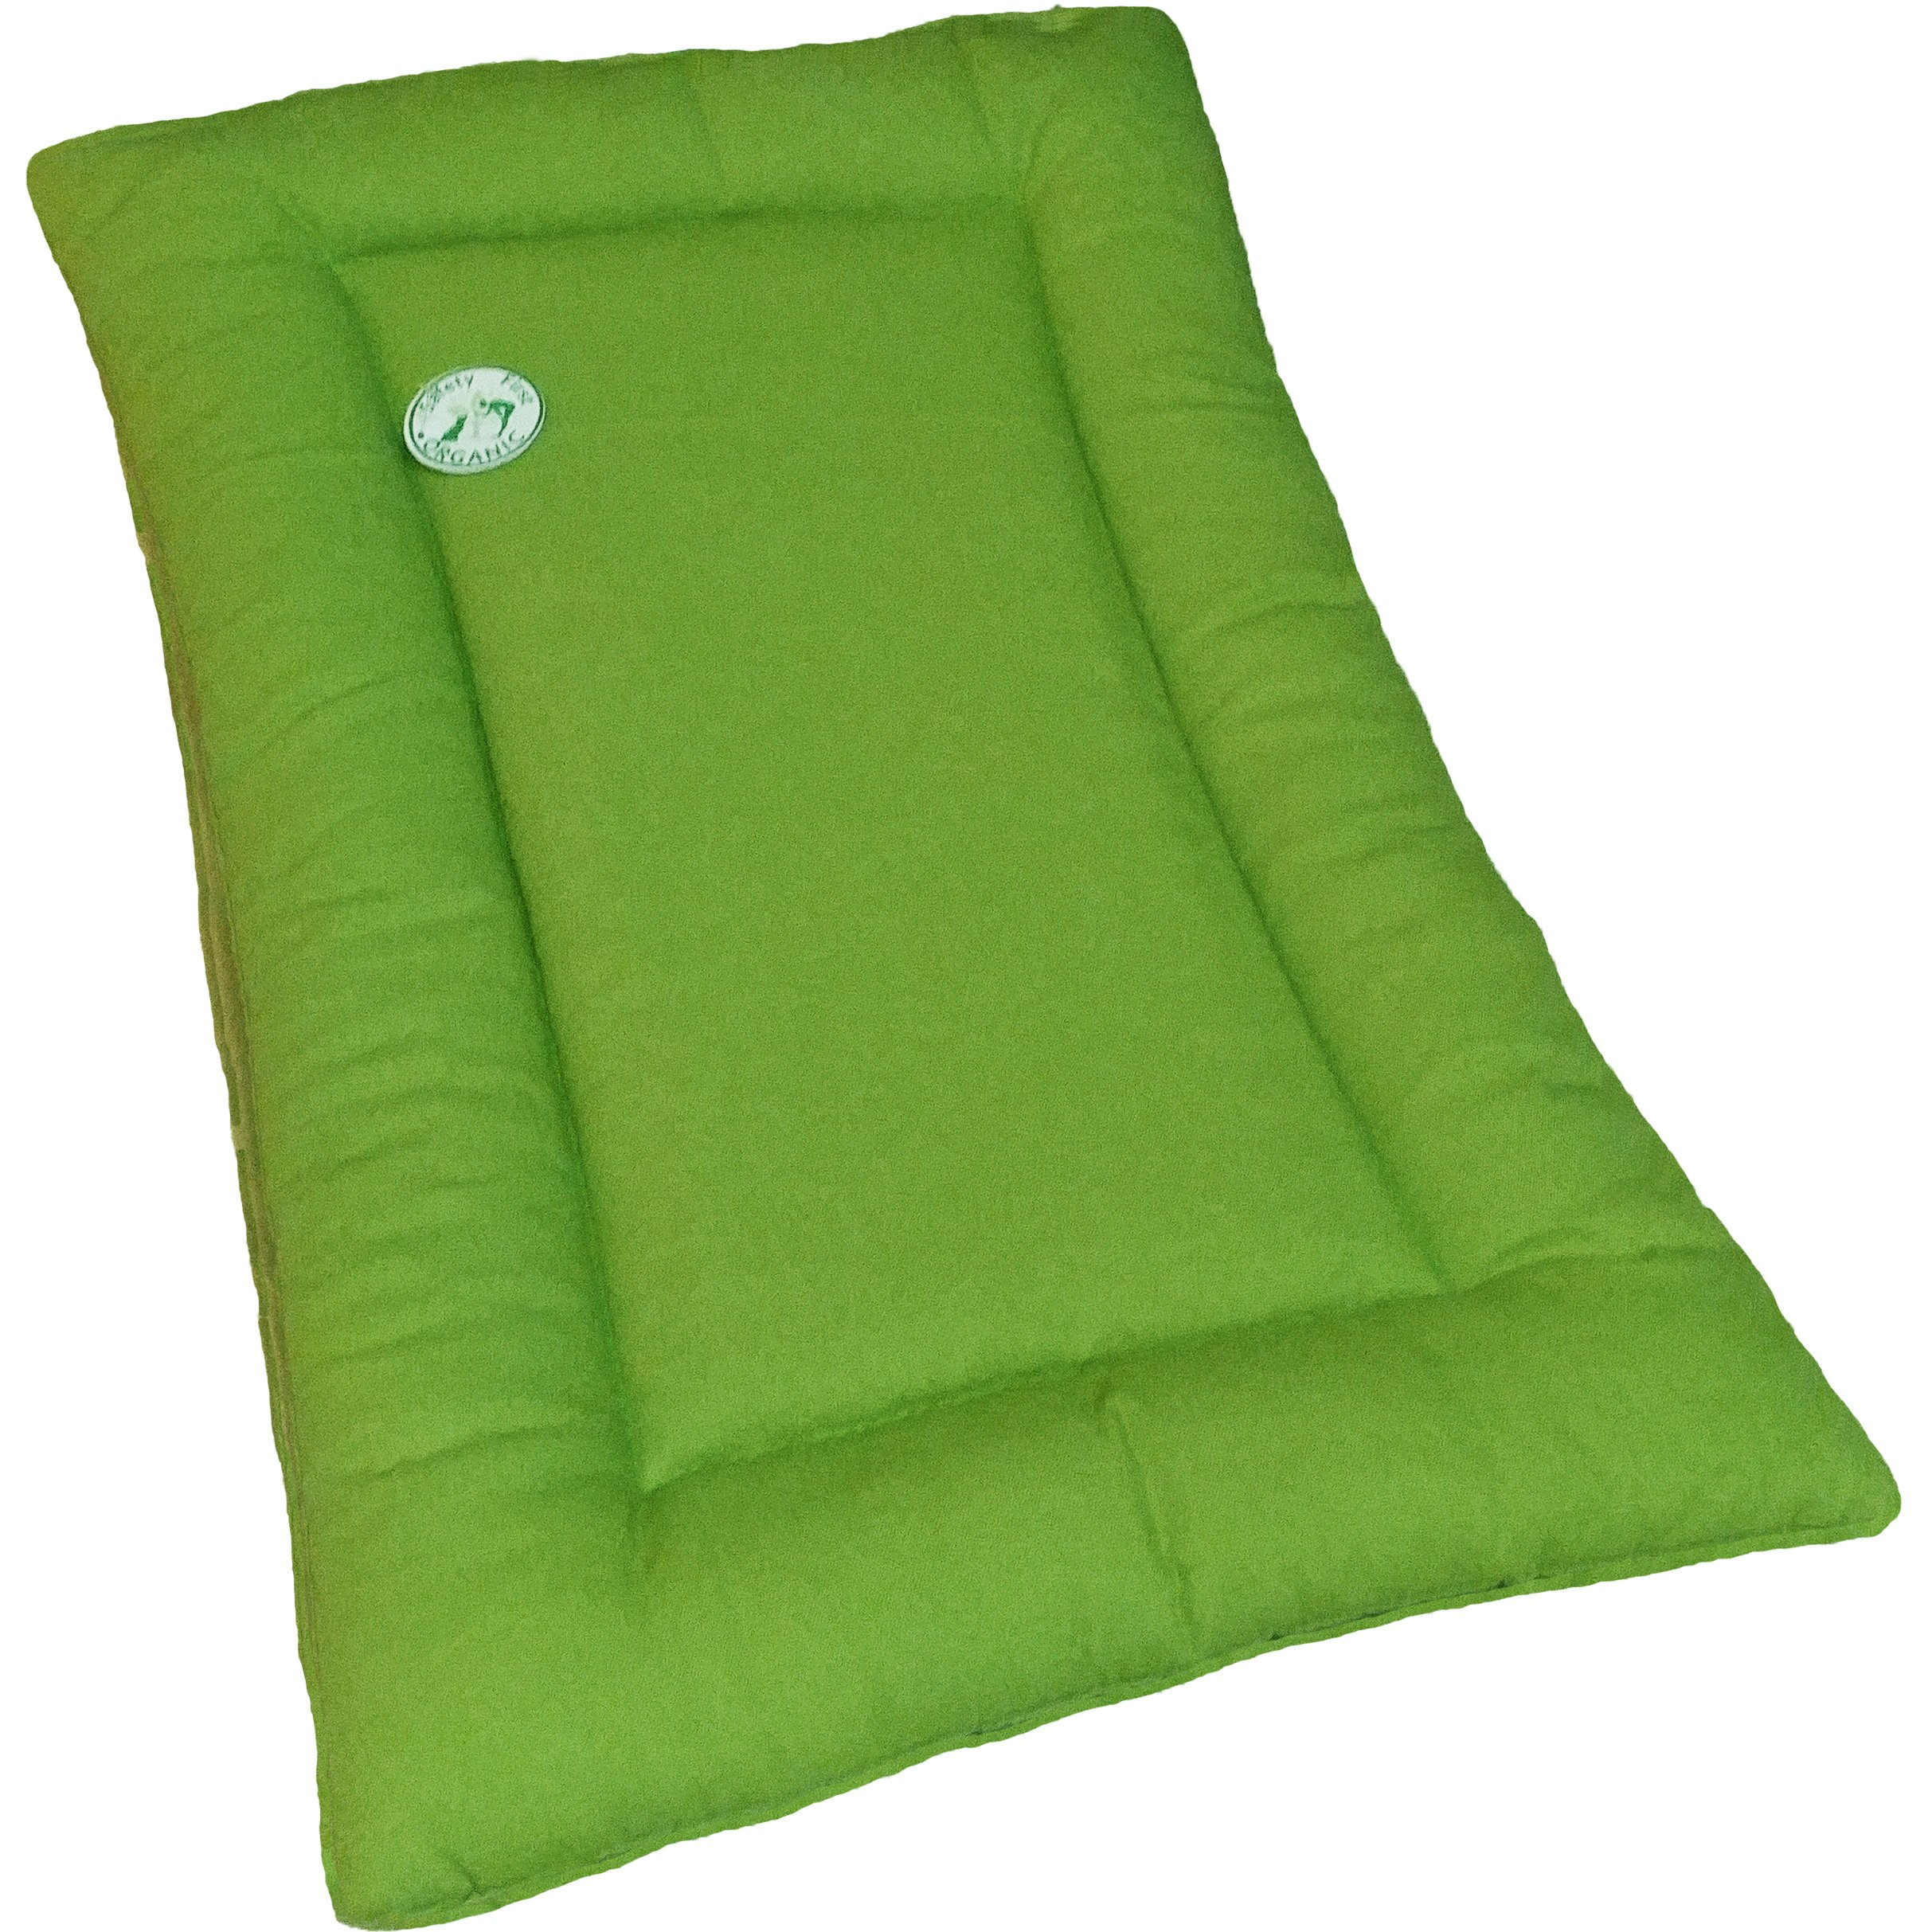 Sit. Stay. Forever. Dog Bed, Hypoallergenic, Organic Cotton Duck Pet Landing Pad / Travel Mat. Made in the USA. (X-Small (19'' x 15''), Avocado) by Sit. Stay. Forever. (Image #1)